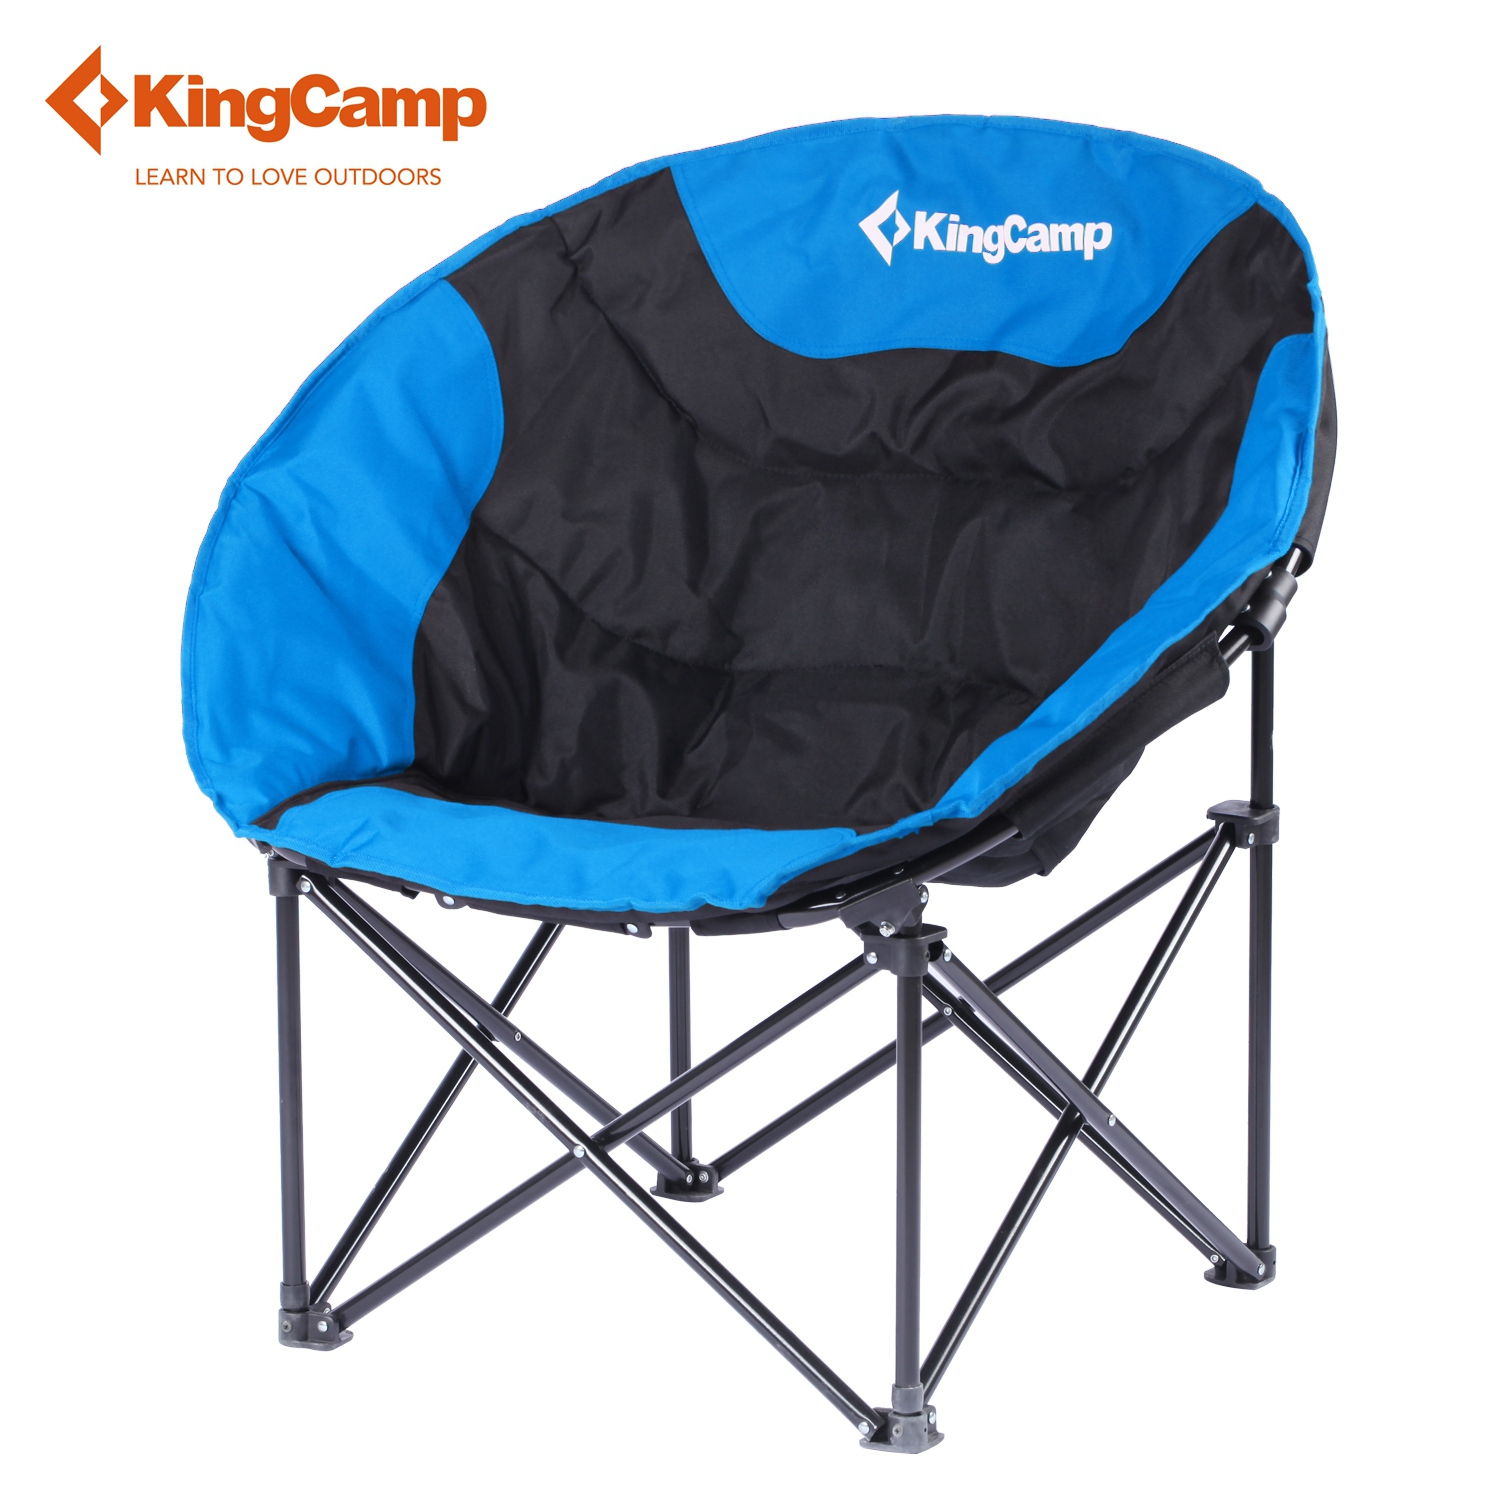 KingCamp Ultra-light Soft Moon Leisure Ultralight Camping Chair Blue Fishing Chairs with Magazines Bag Heavy-Duty Construction<br><br>Aliexpress